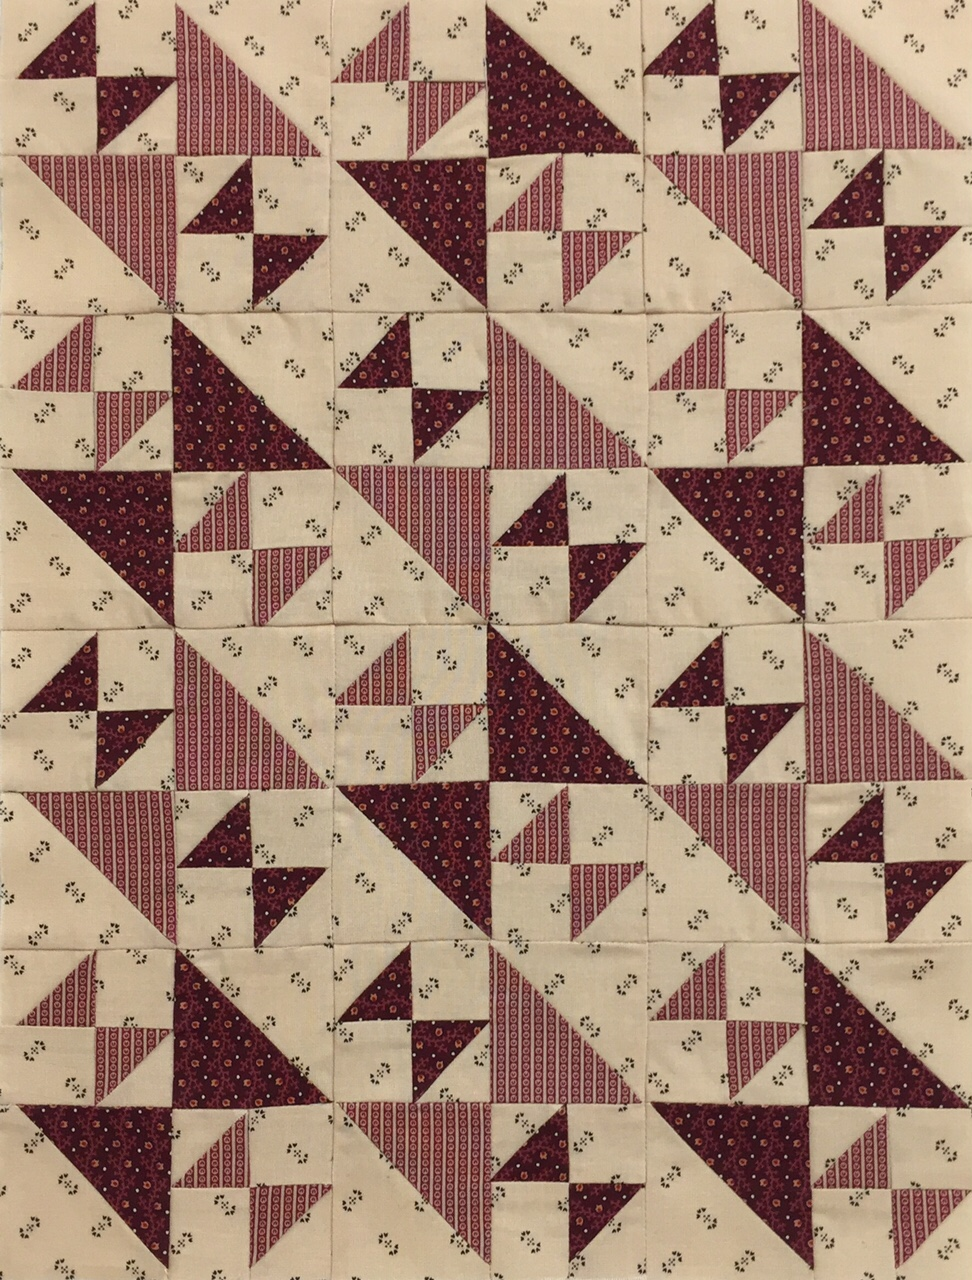 Miniature Quilt--Old Maid's Puzzle Variation - Reproduction